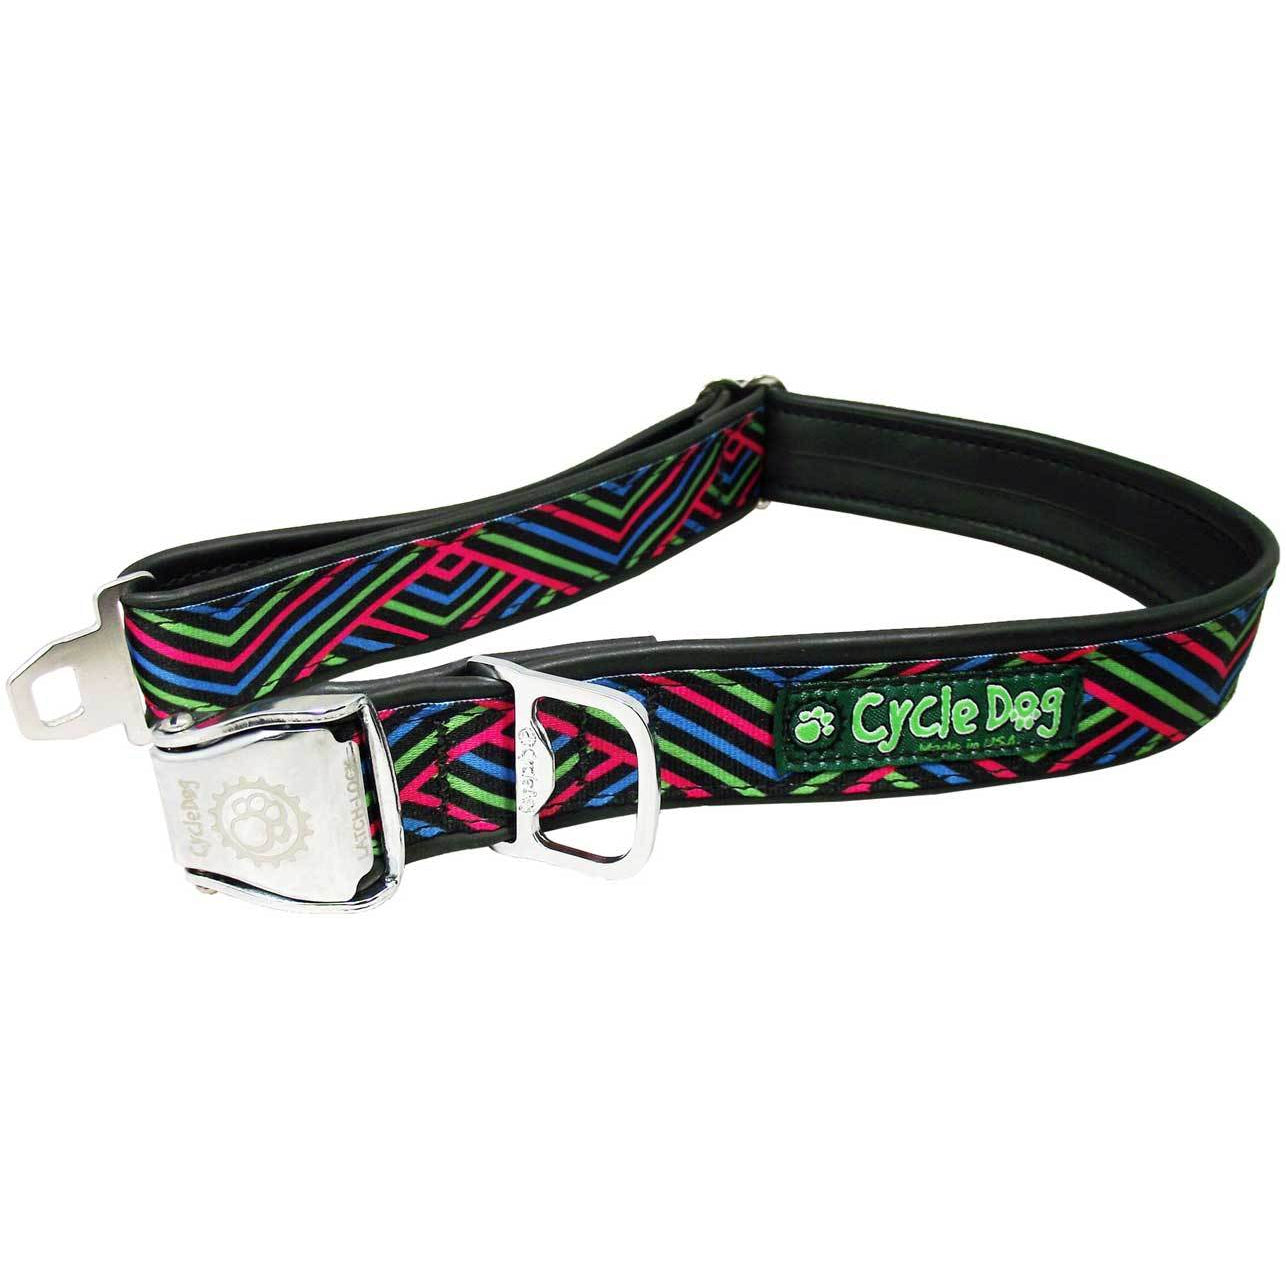 Cycle Dog Multi Diagonals Dog Collar